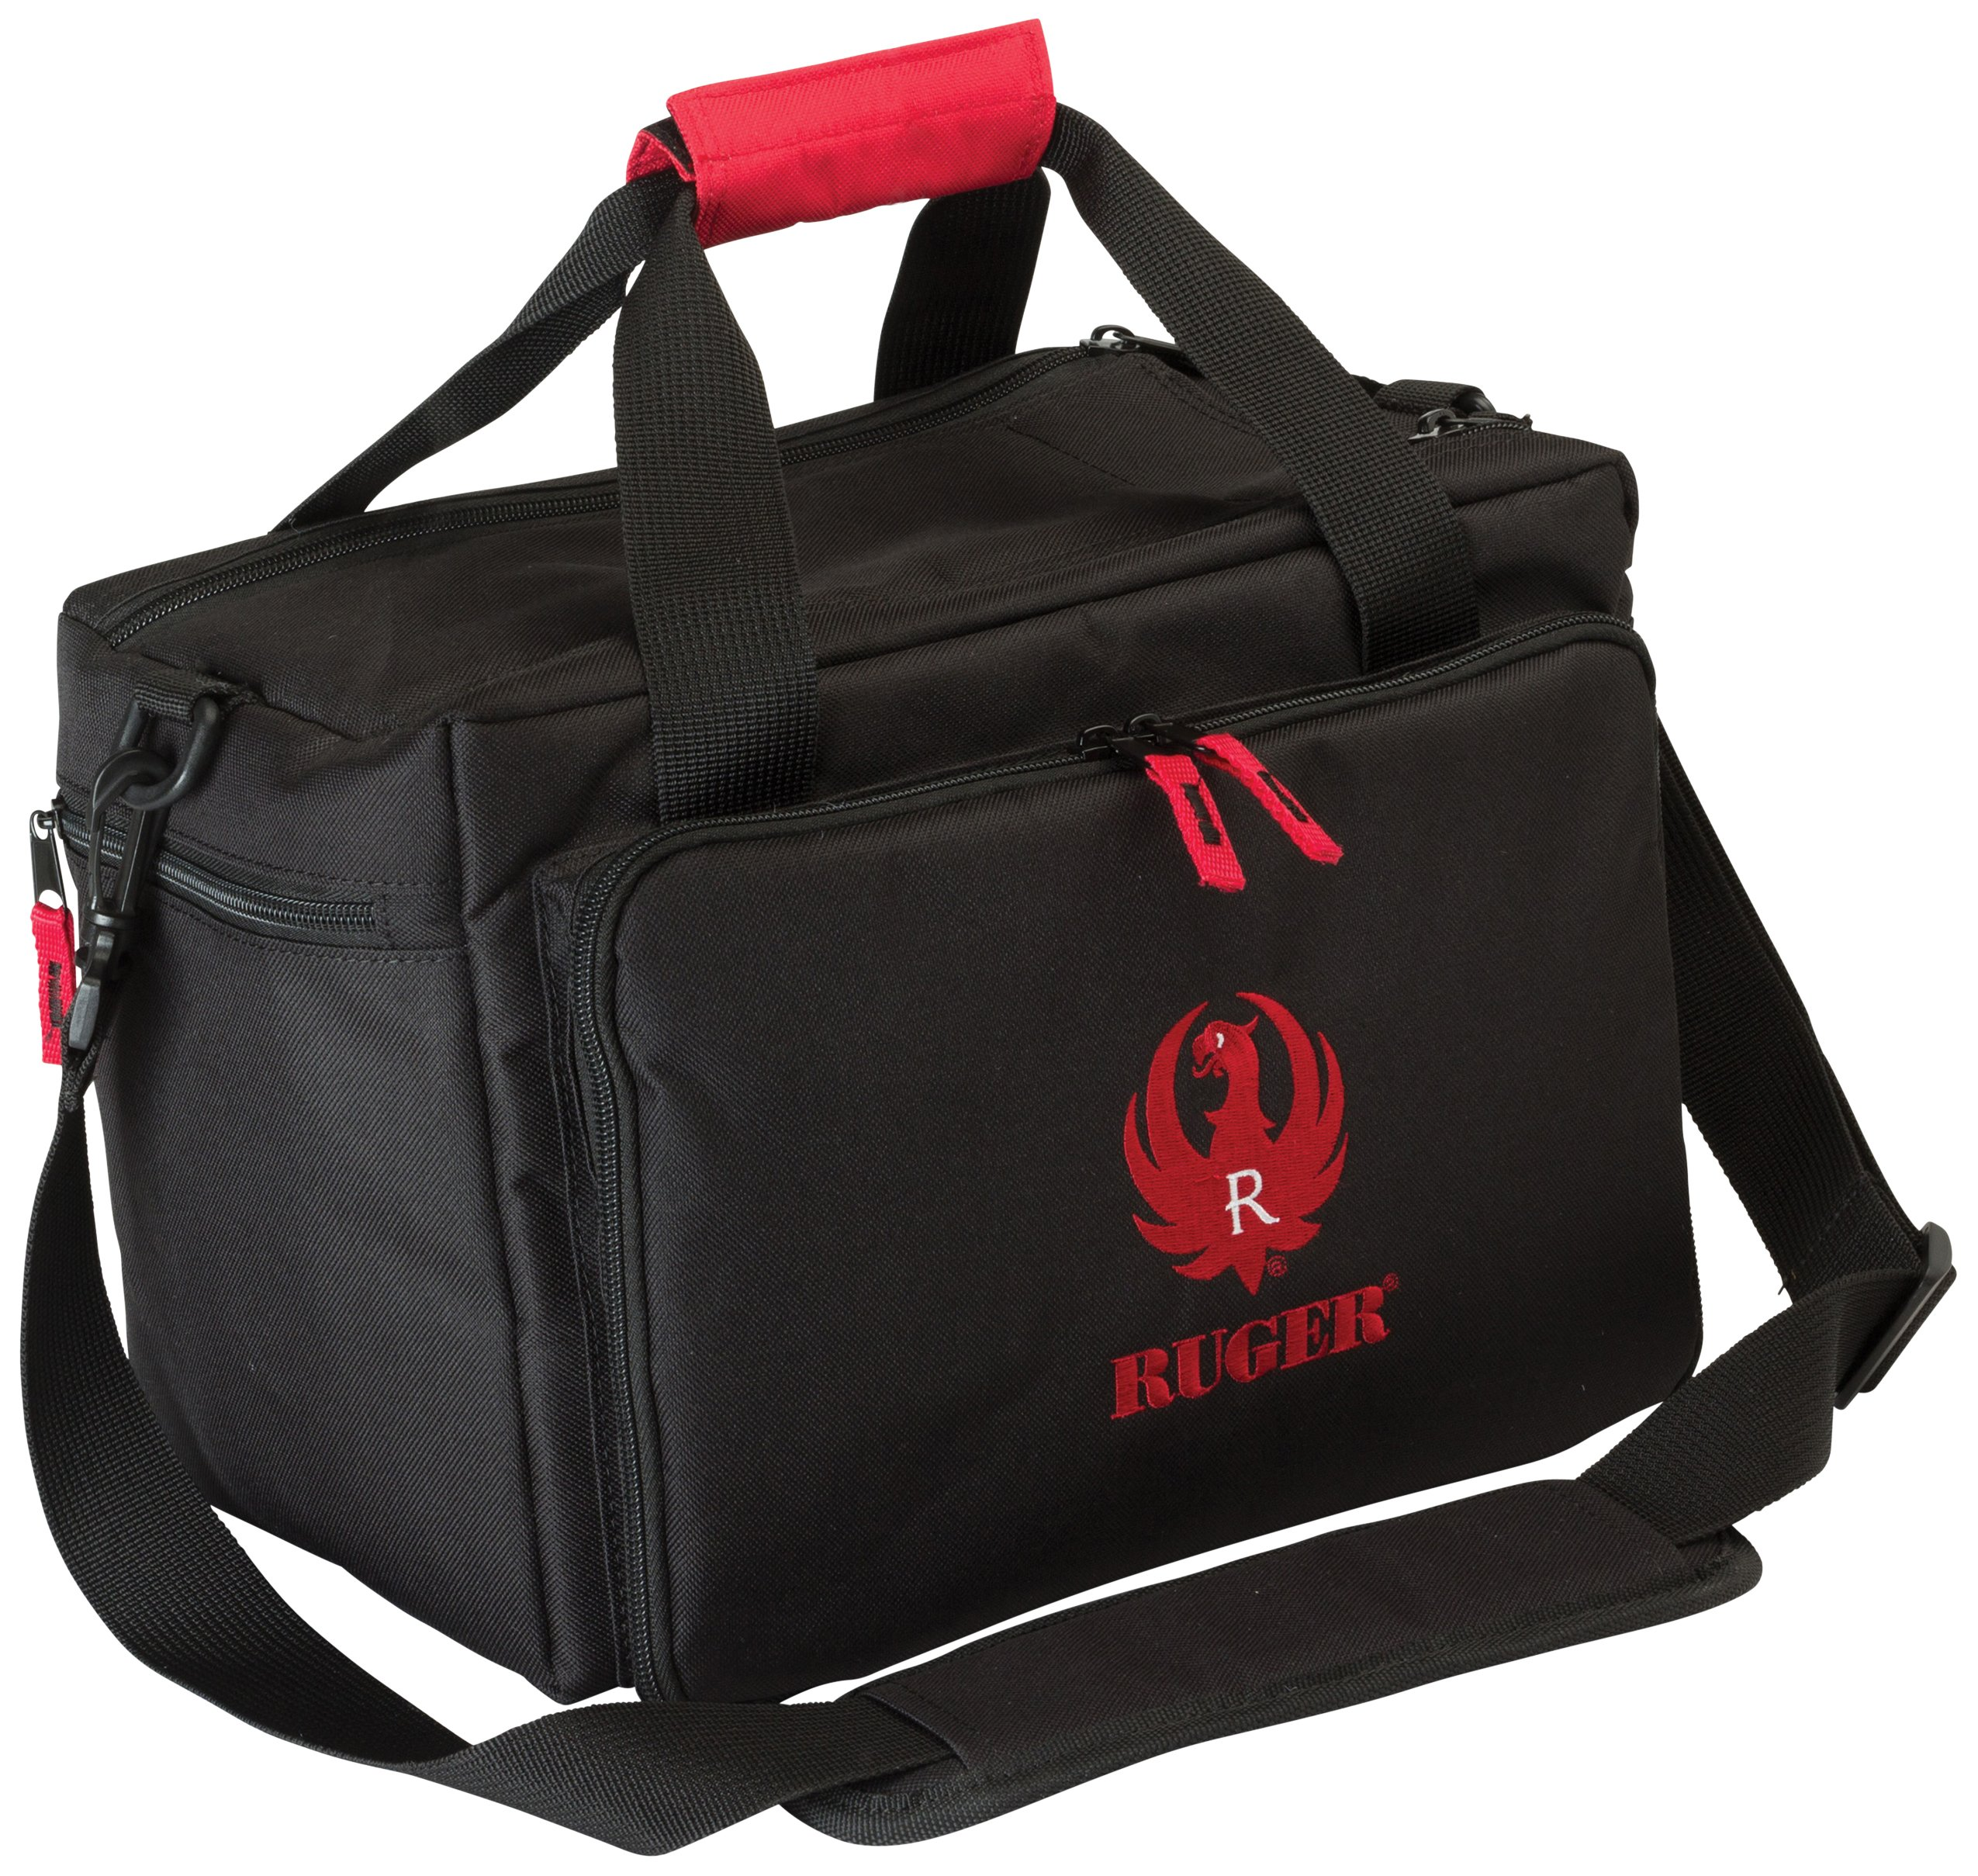 Allen Ruger Shooting Range Bag with Pistol Rug, MOLLE Loops & Ammo Carrier by Allen Company